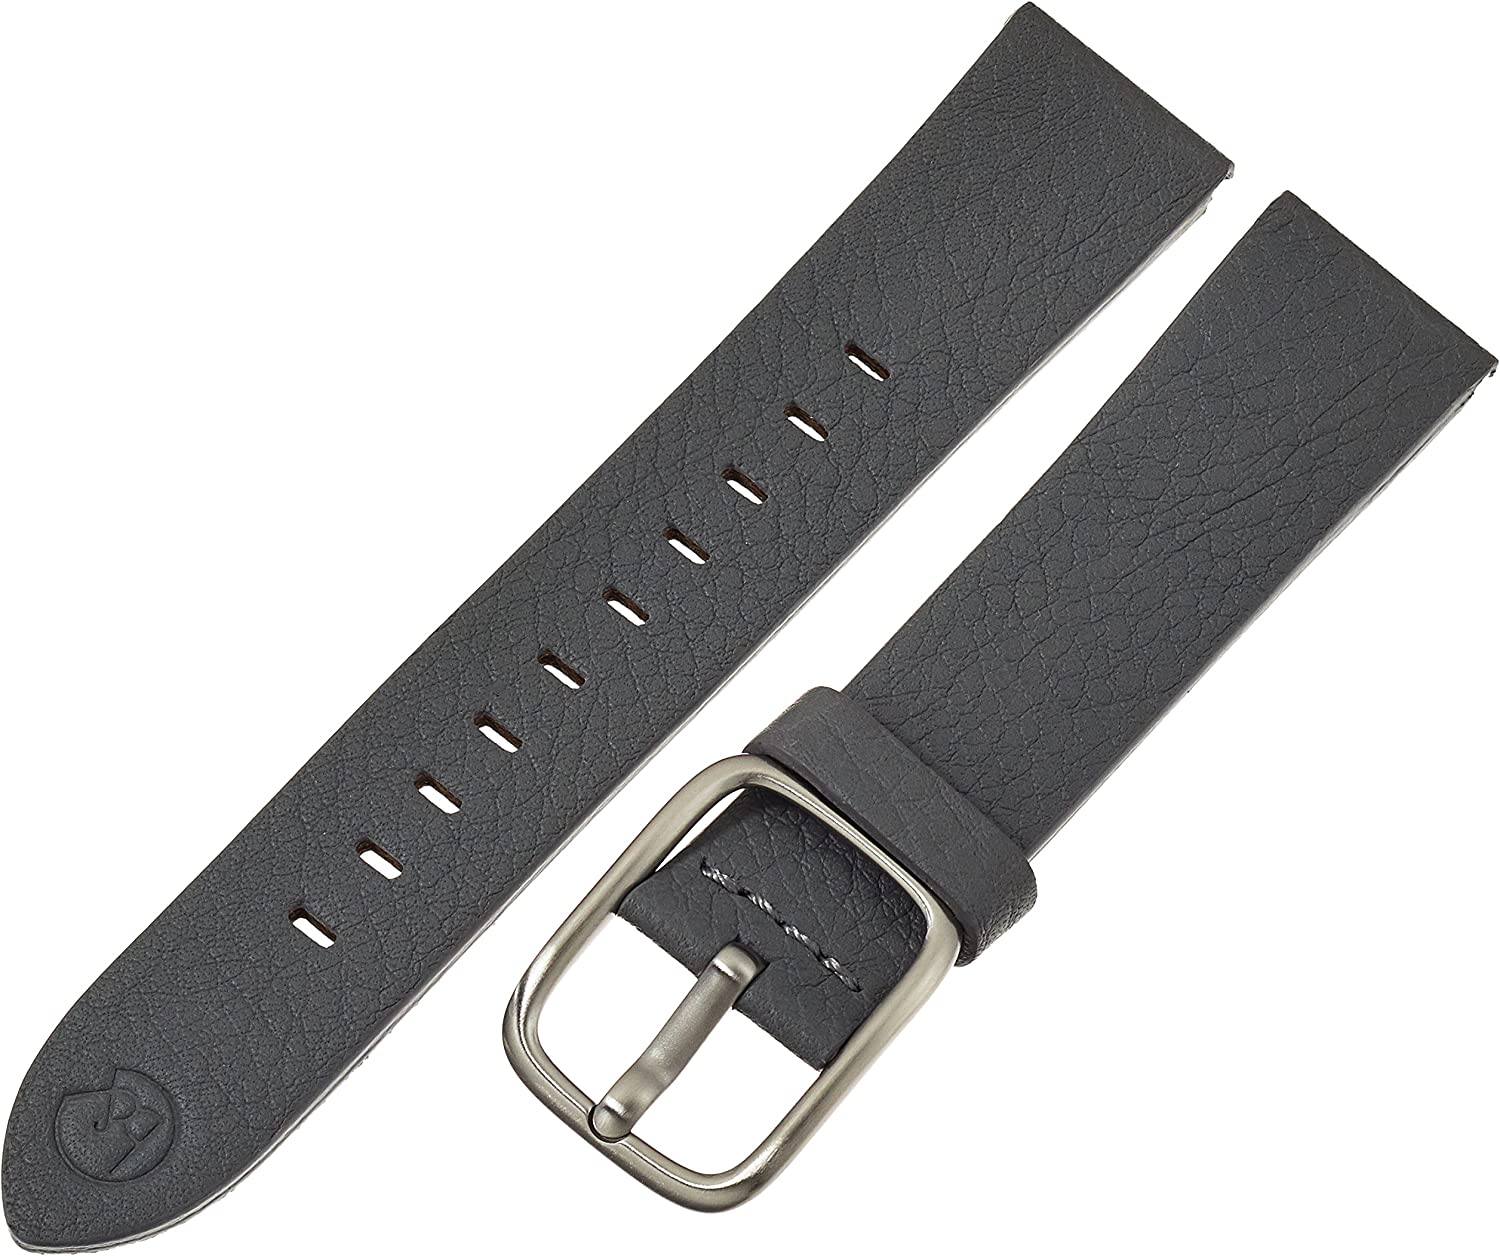 bnd by Hadley-Roma with Mode Grey Leather Genuine Milwaukee Mall Ba Factory outlet 20mm Watch